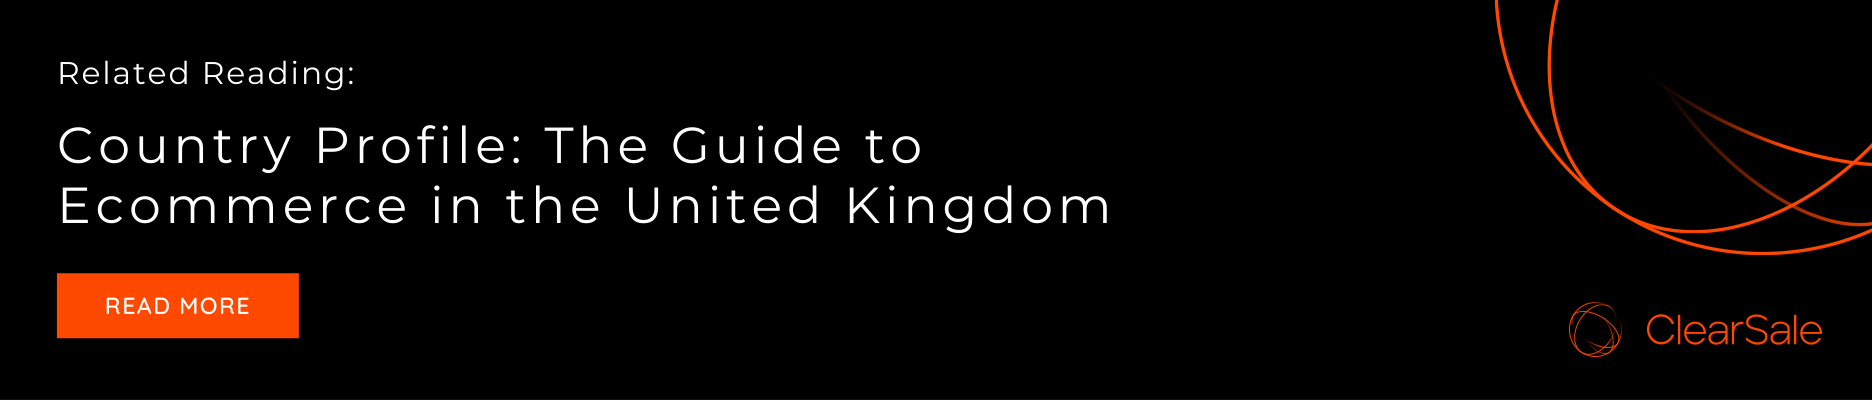 Related Reading: Country Profile: The Guide to Ecommerce in the United Kingdom